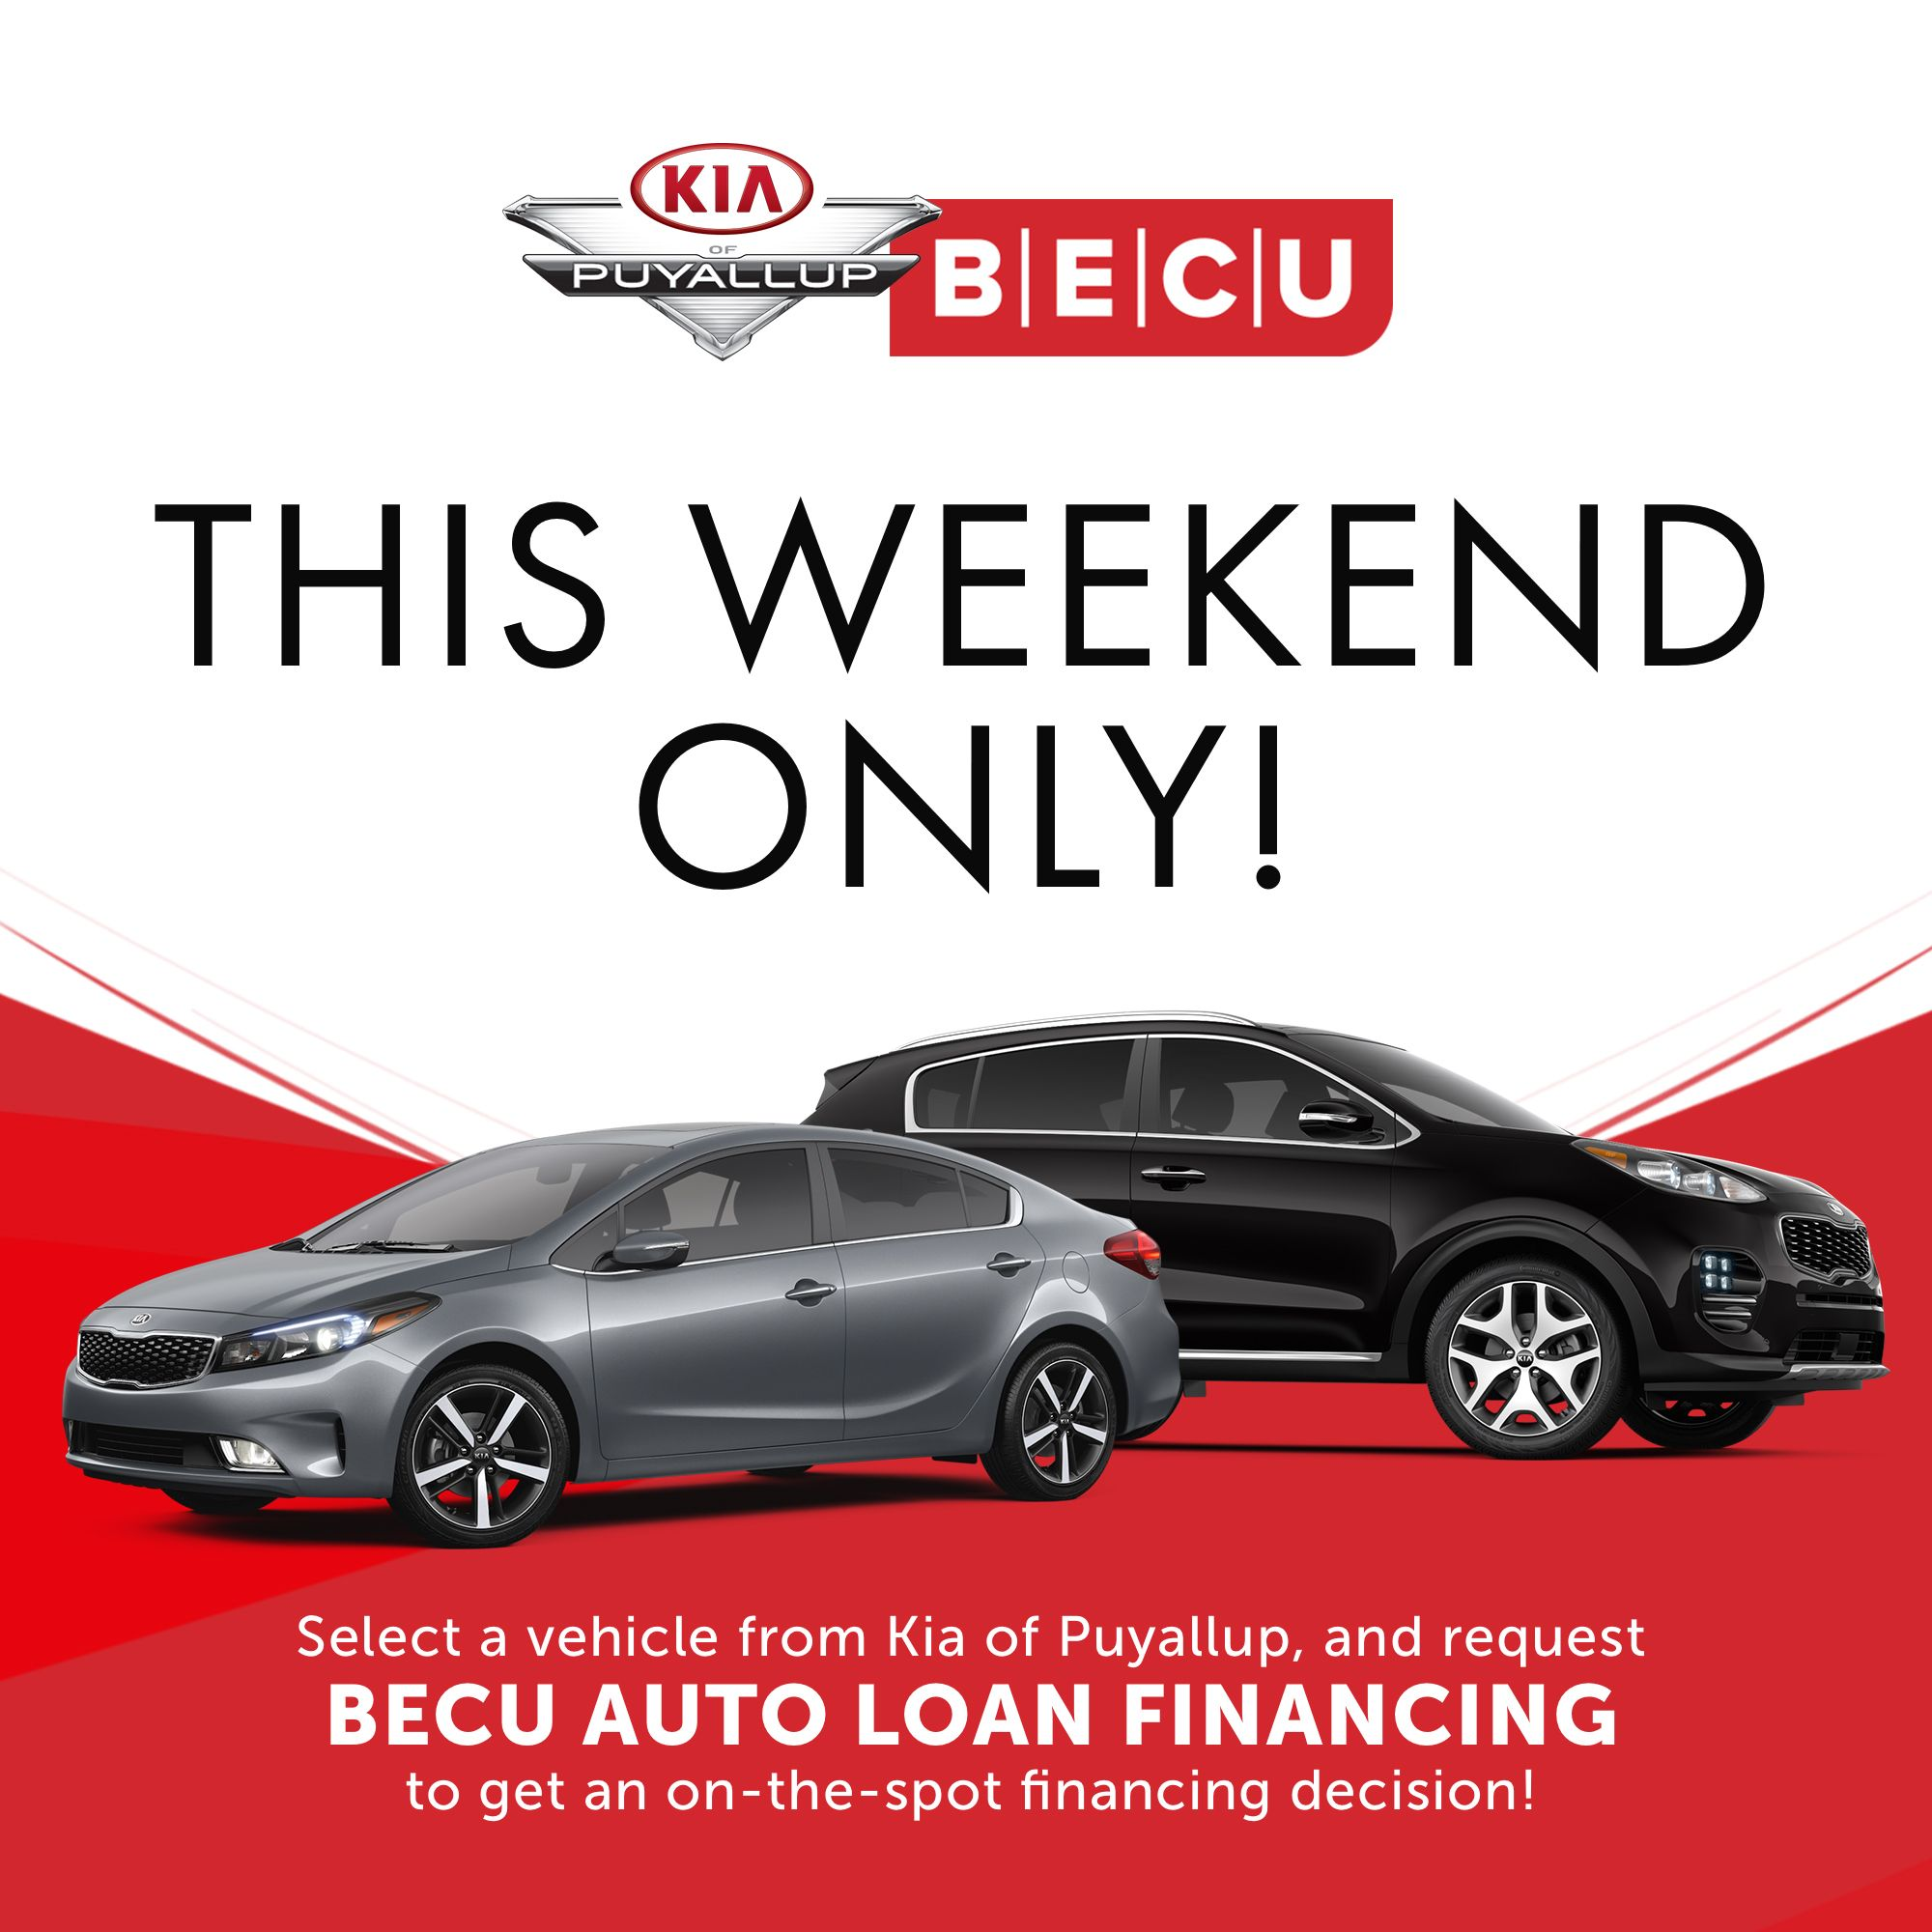 Becu Car Loan >> Kia is participating in BECU's Spring Auto Event! Select a car and request BECU auto loan ...